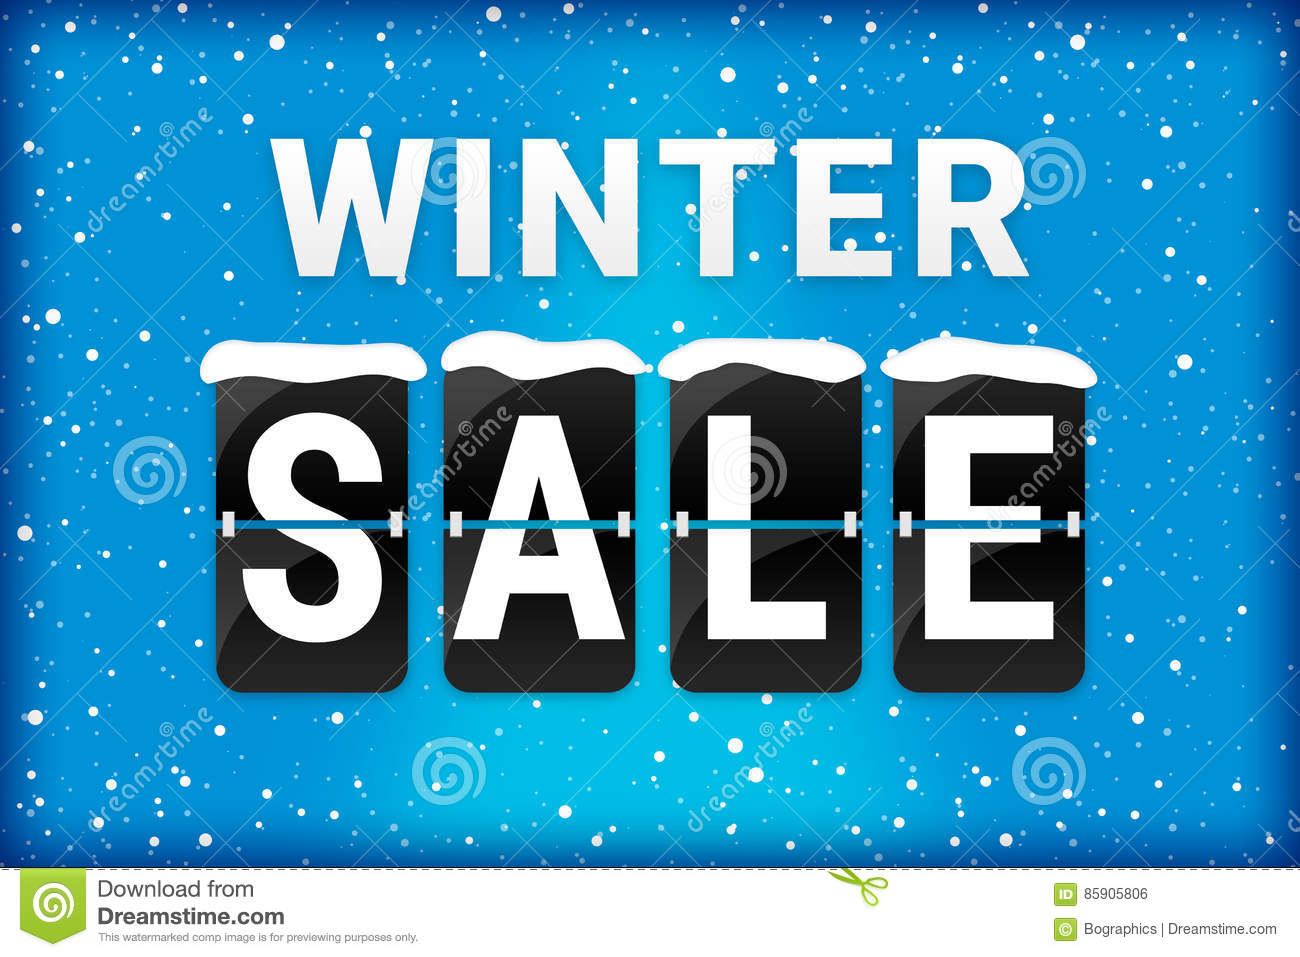 Winter sale analog flipping text blue